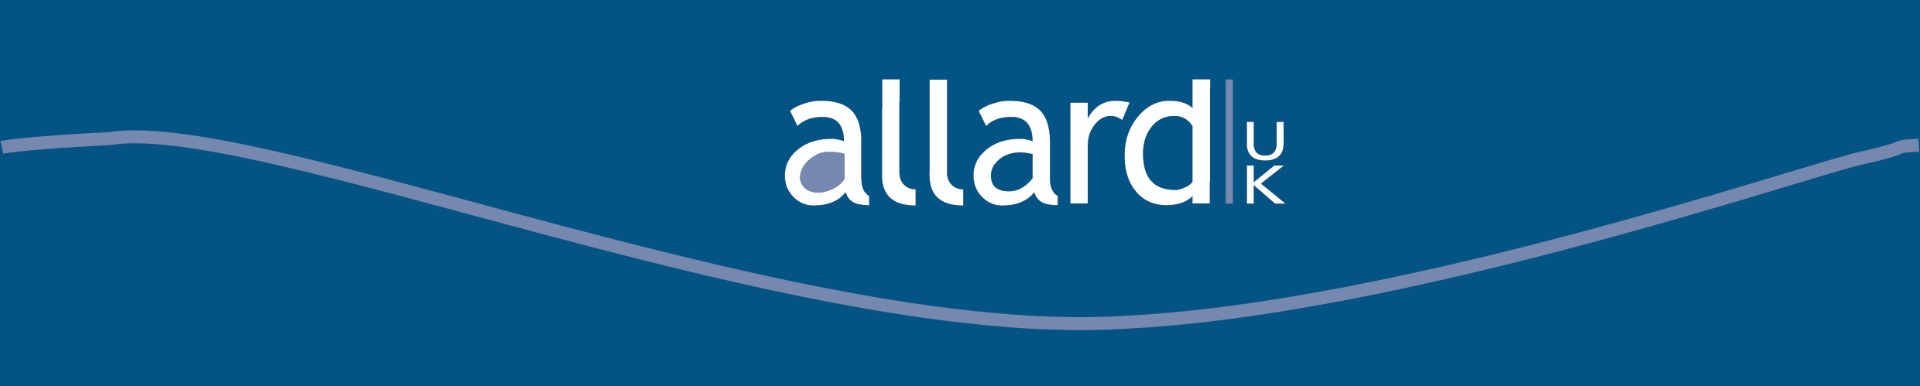 Allard UK banner education page